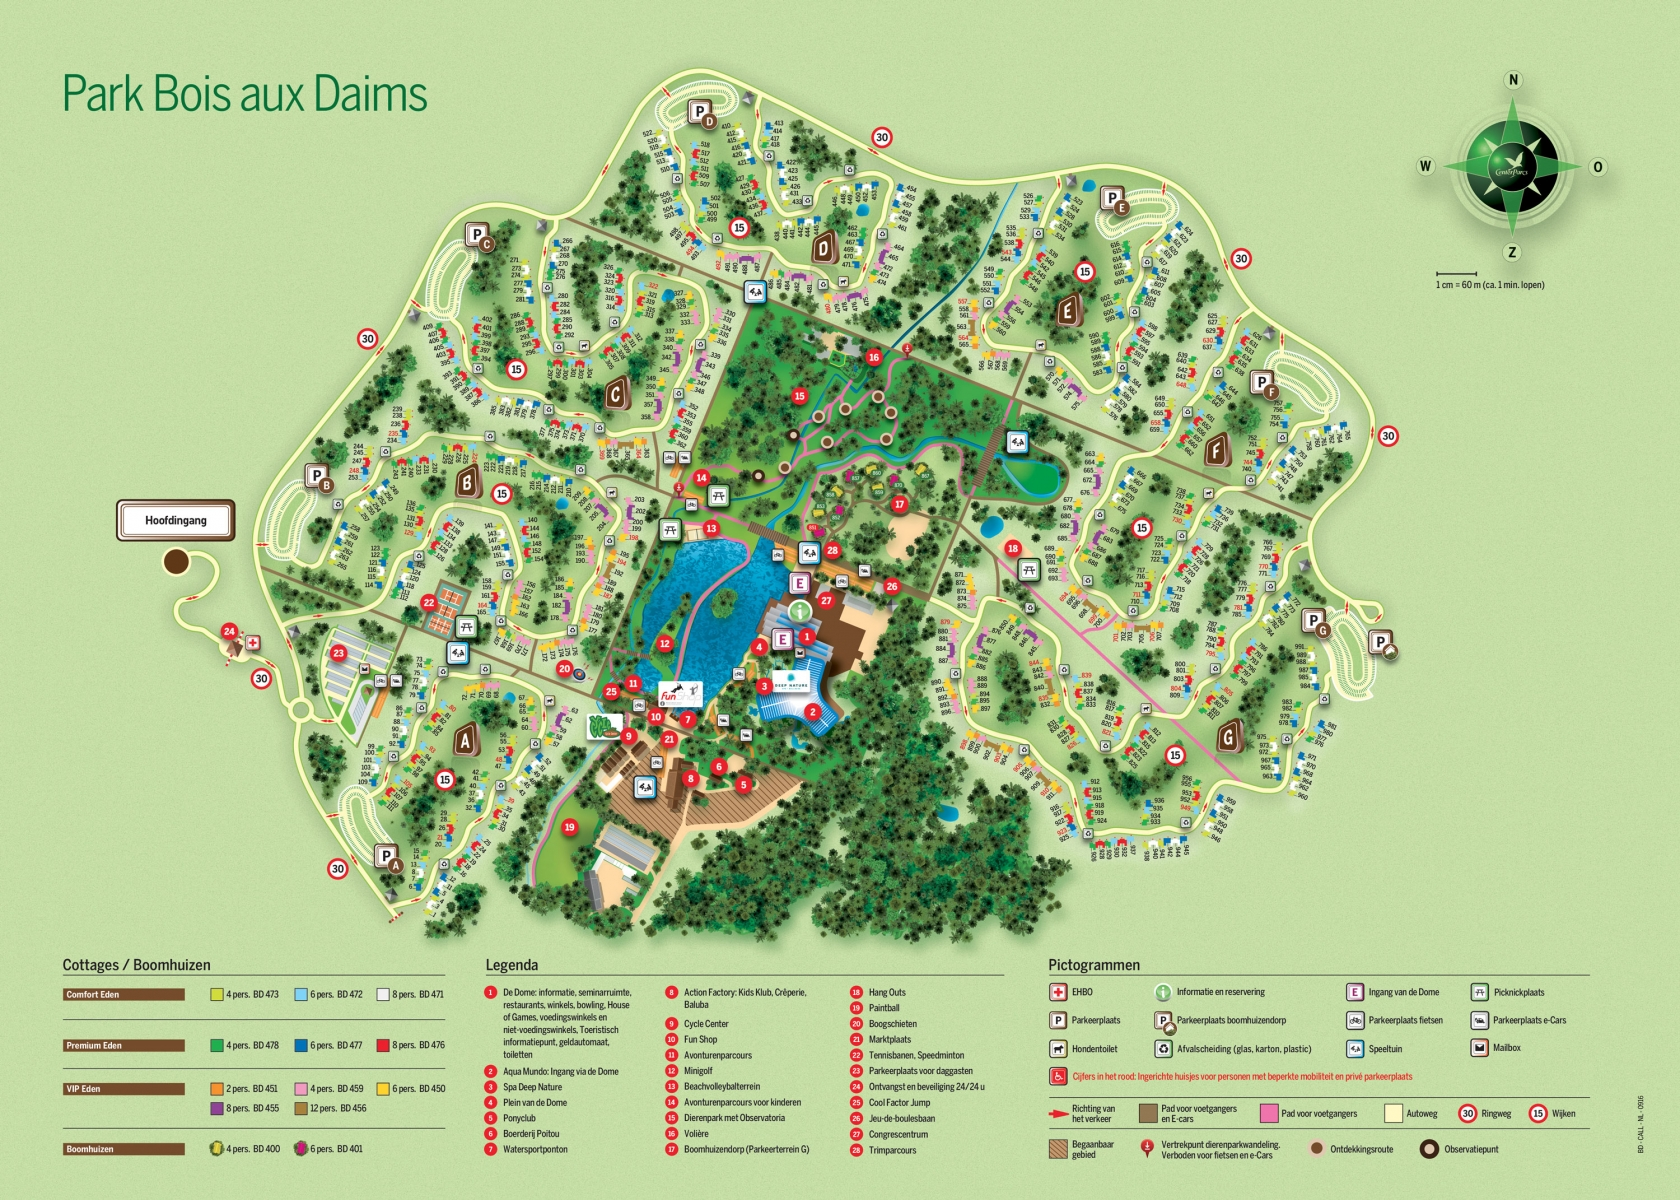 Center Parcs Le Bois aux Daims